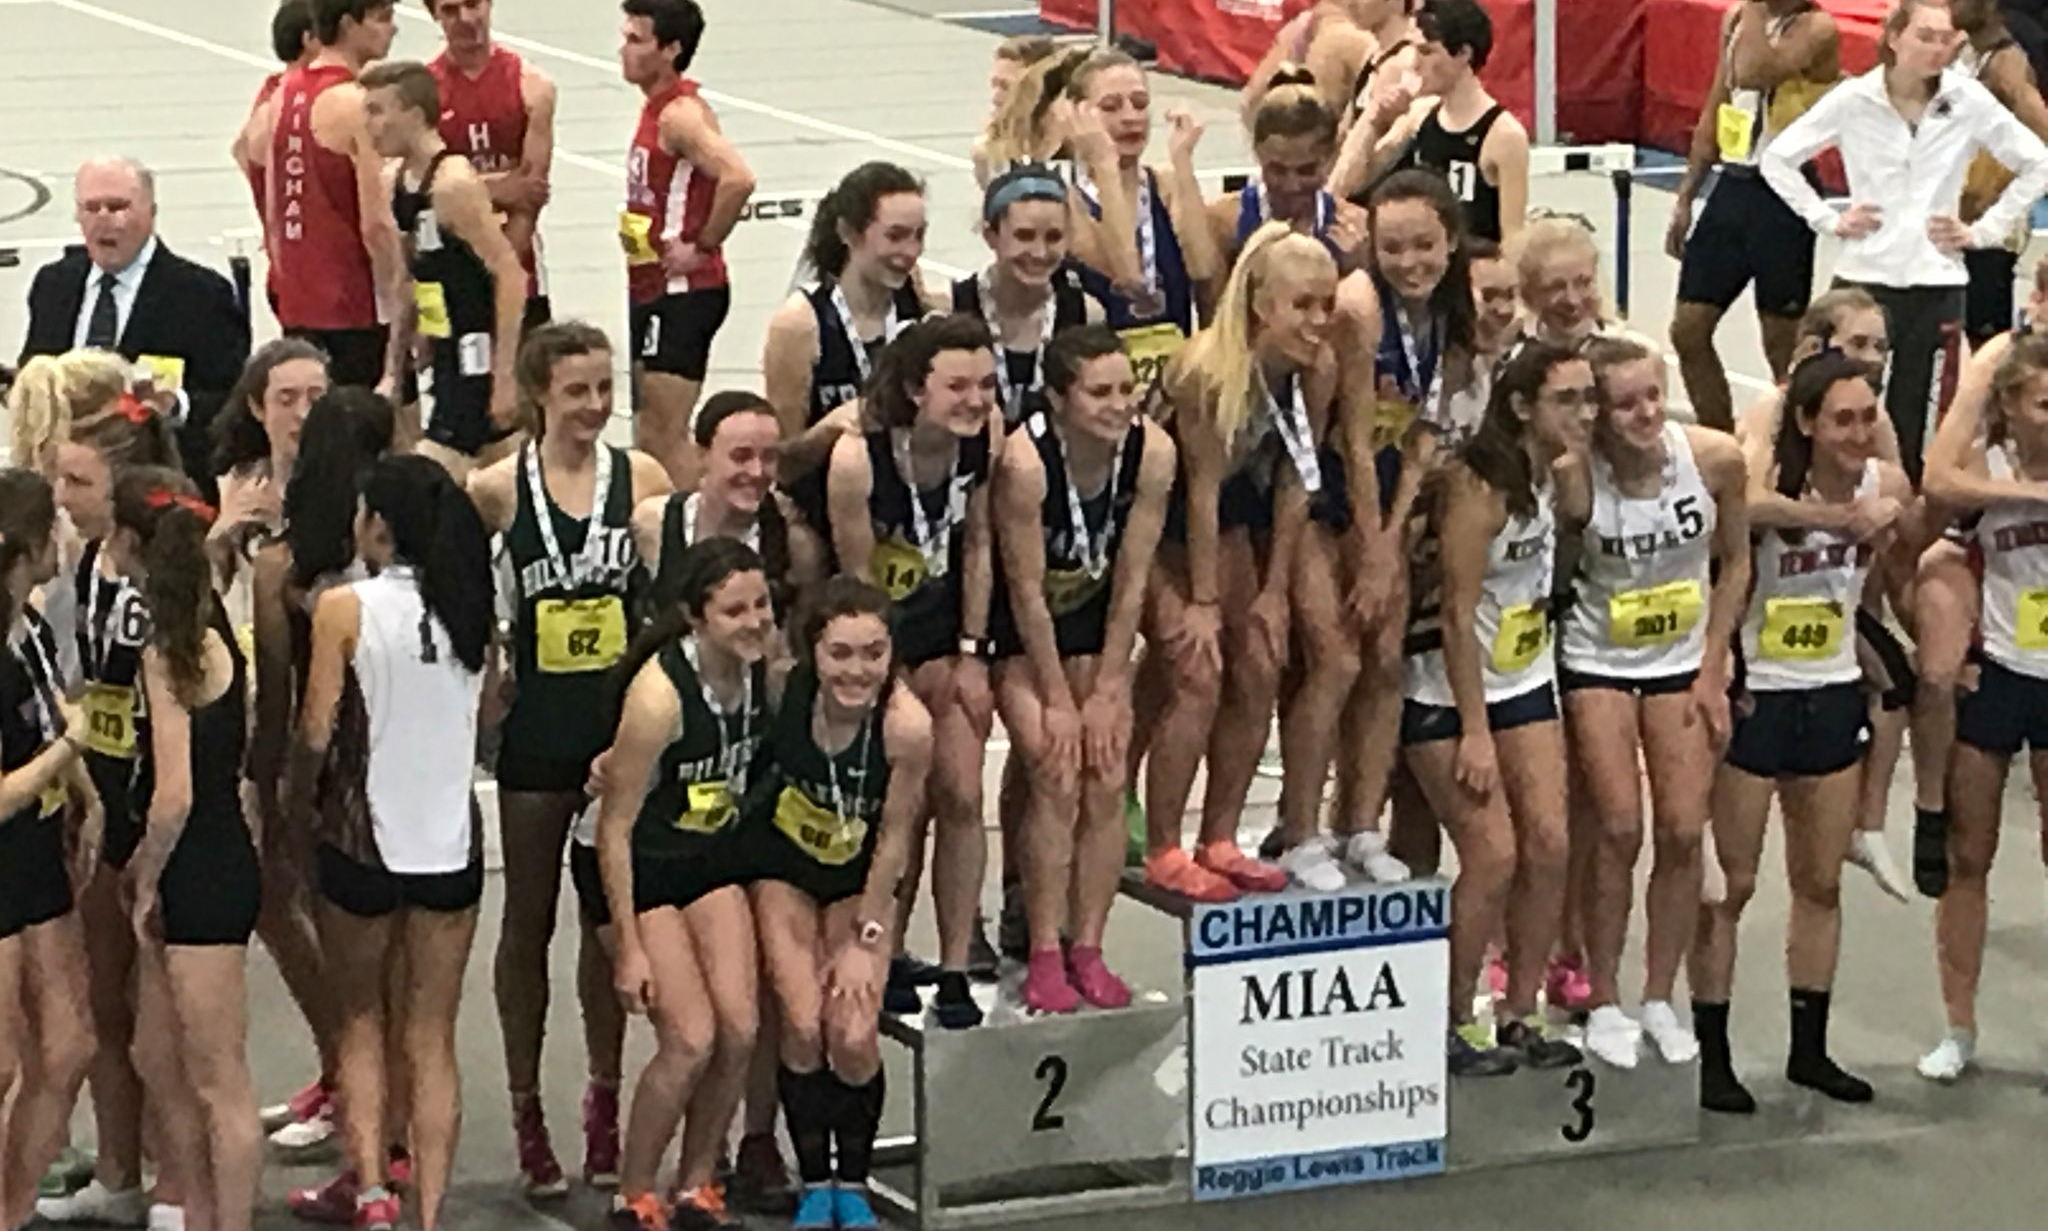 Indoor Track: Hock Results From MIAA All State Meet